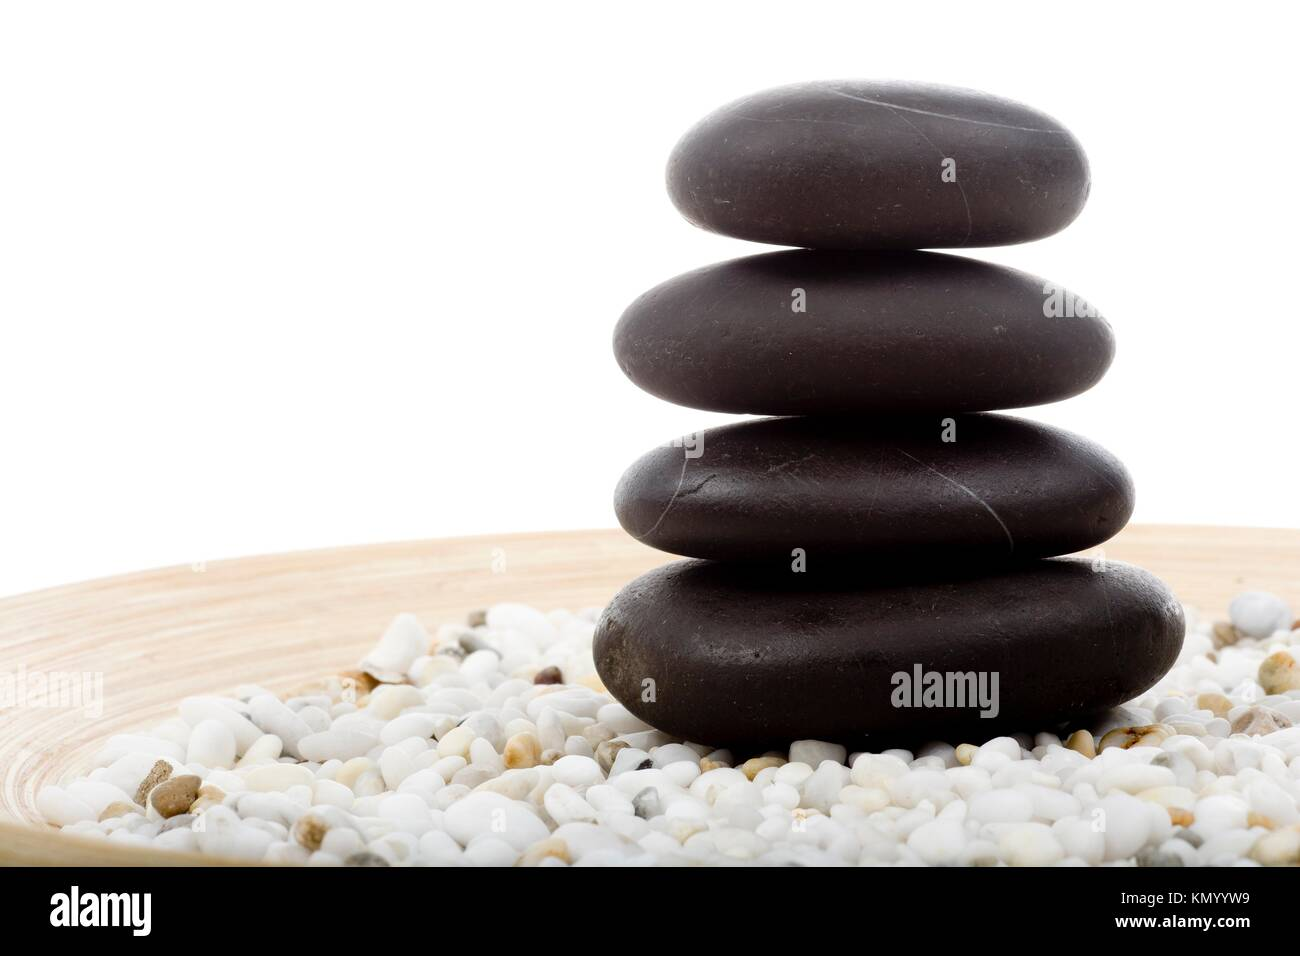 stone tower in the spa for stone therapy - Stock Image